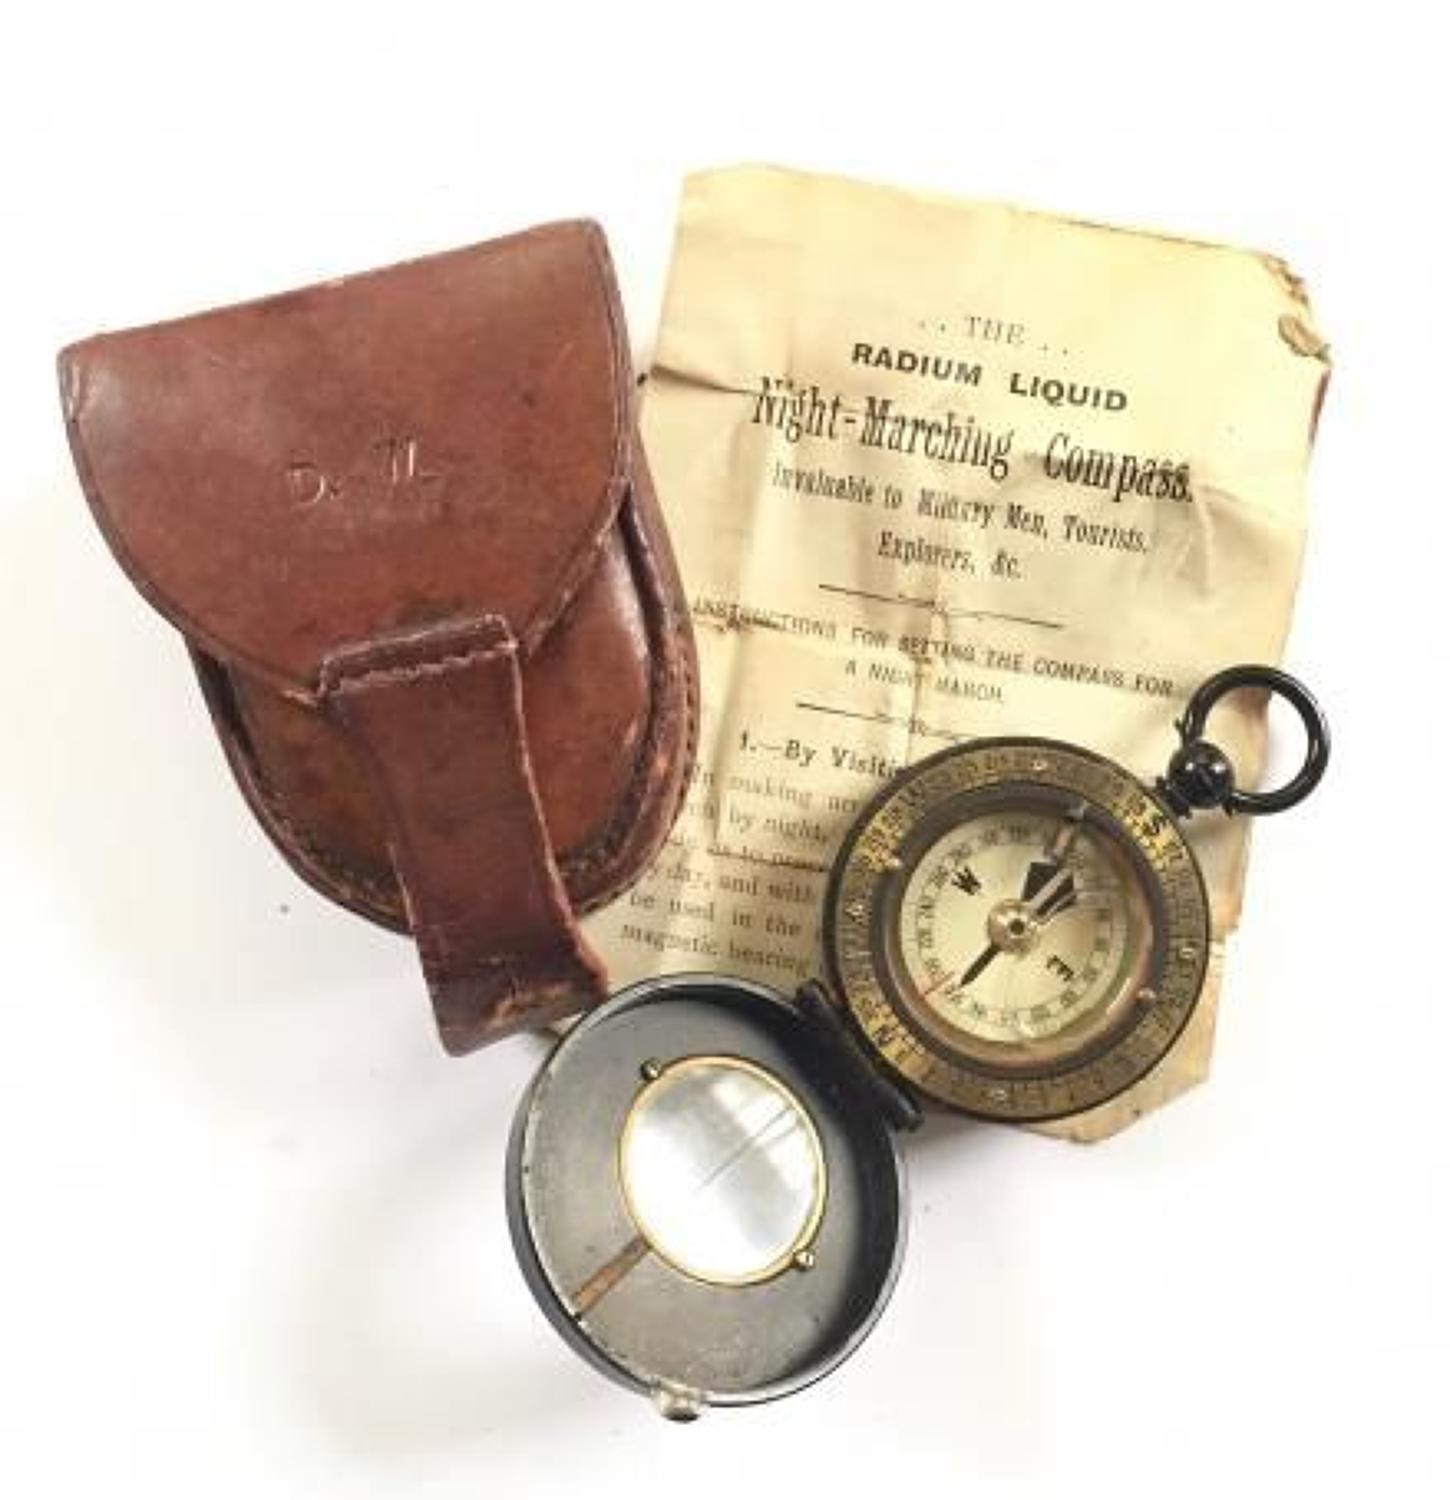 WW1 Period British Army Officer's Marching Compass.